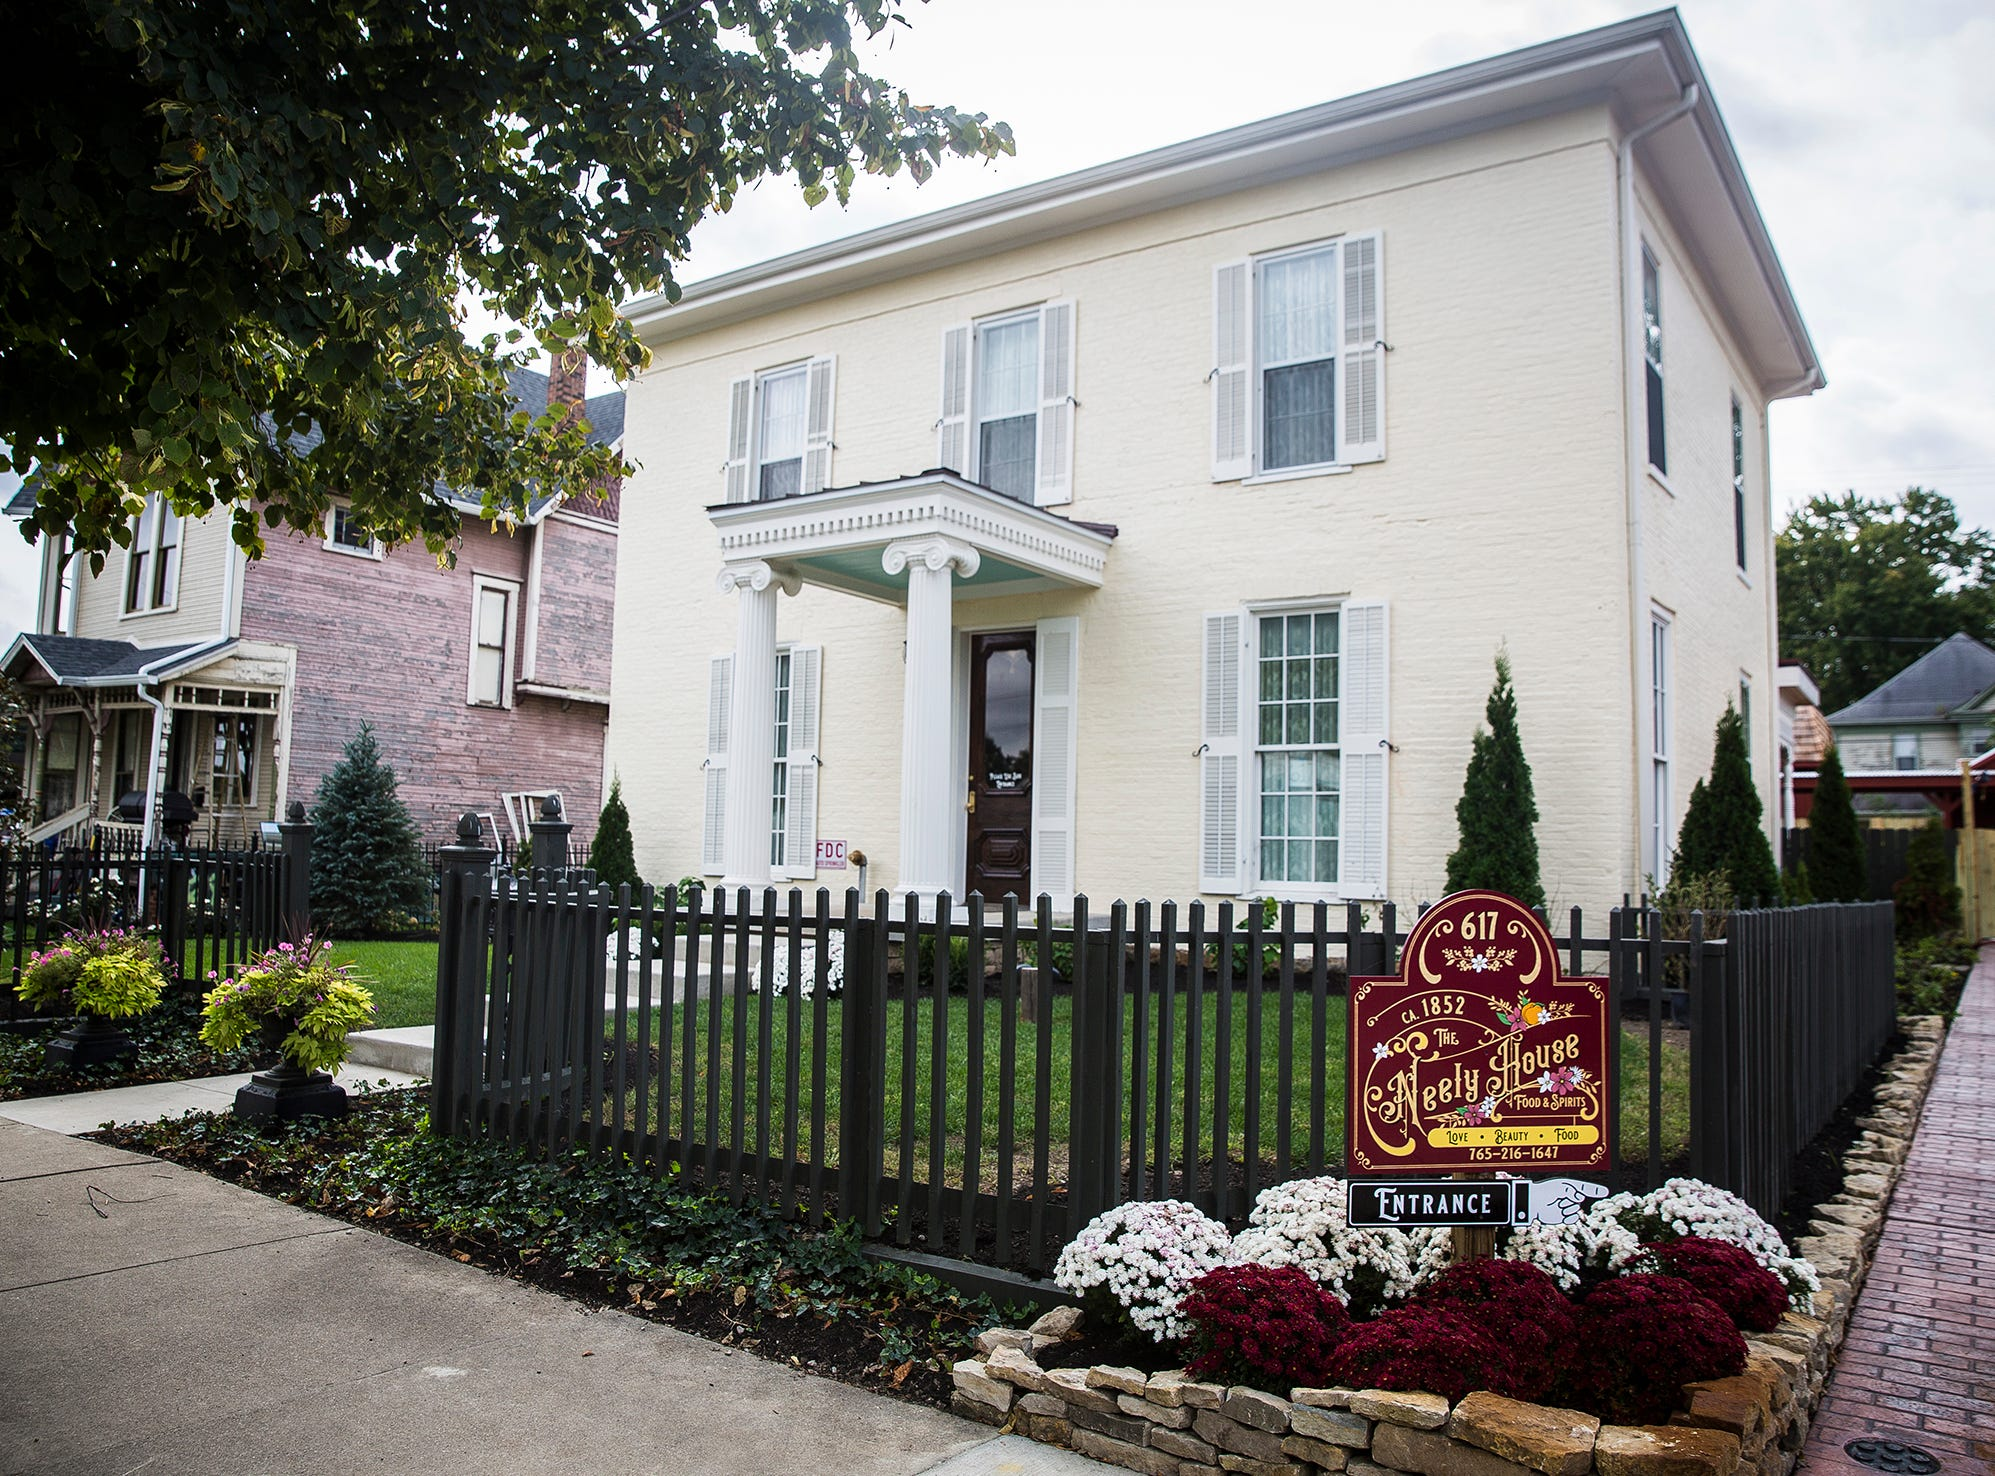 The Neely House restaurant at 617 E. Adams Street will open Thursday during the Artswalk and soup crawl in Muncie.